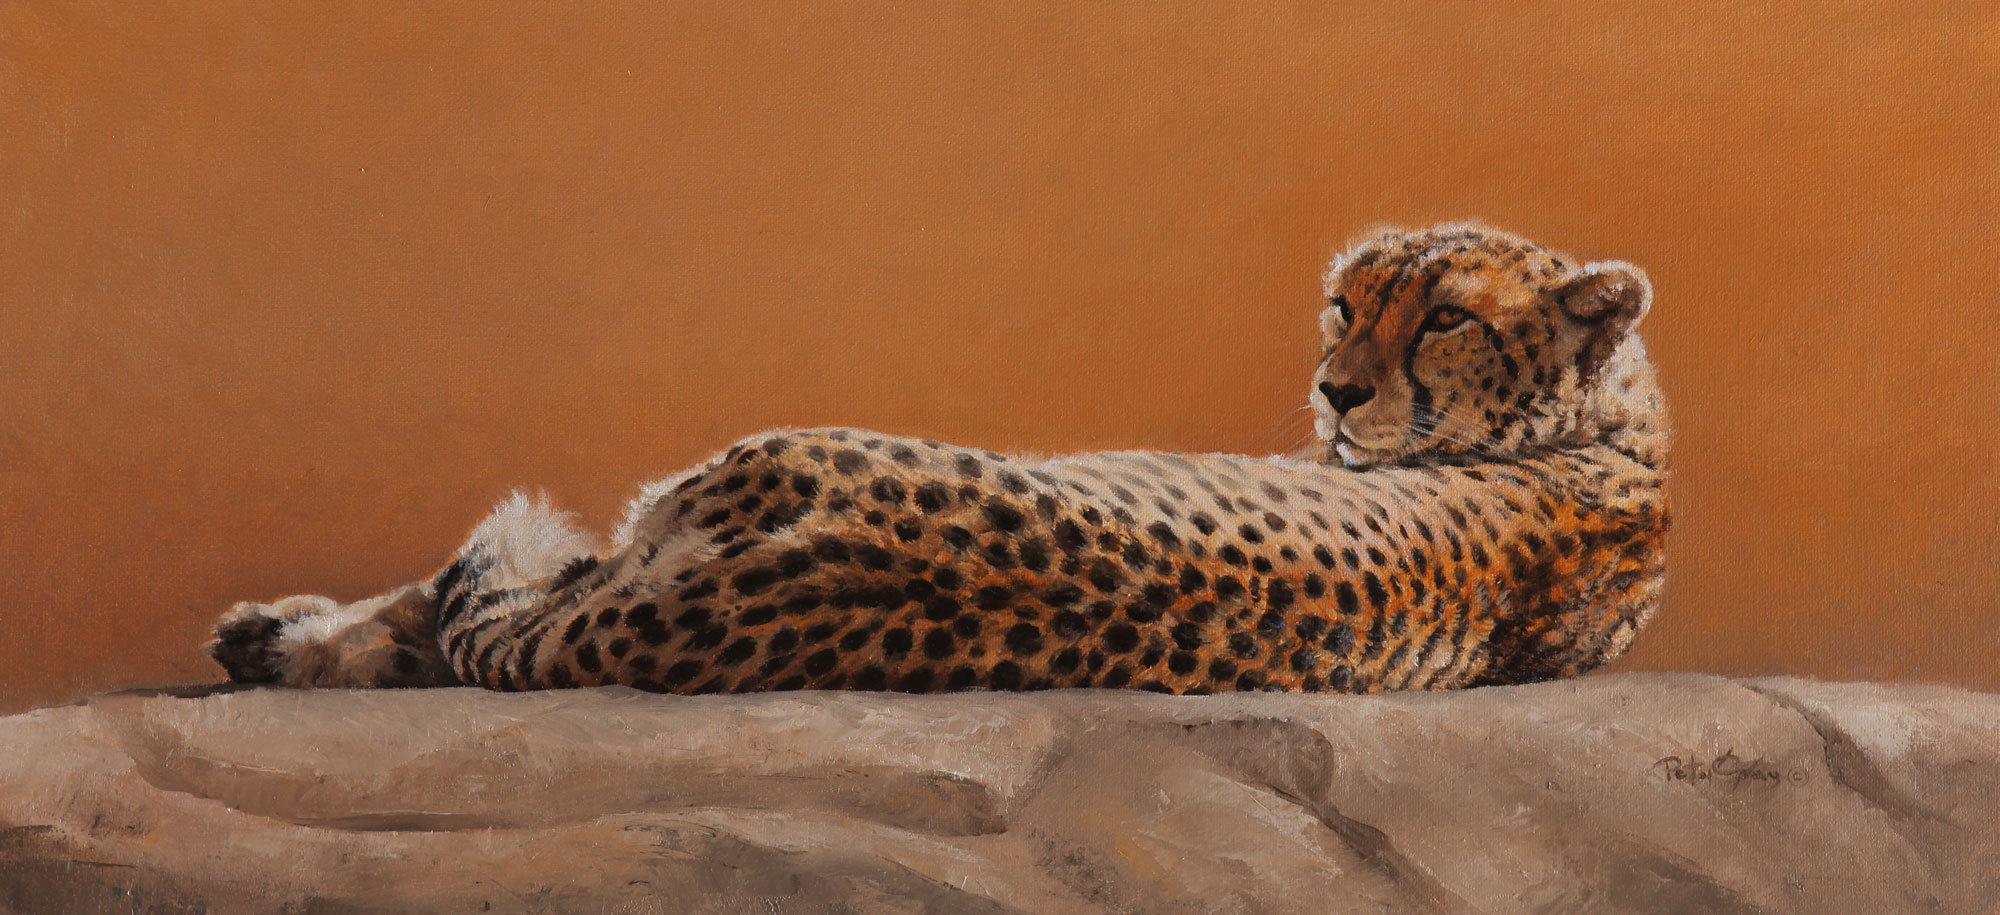 Basking-Cheetah.jpg